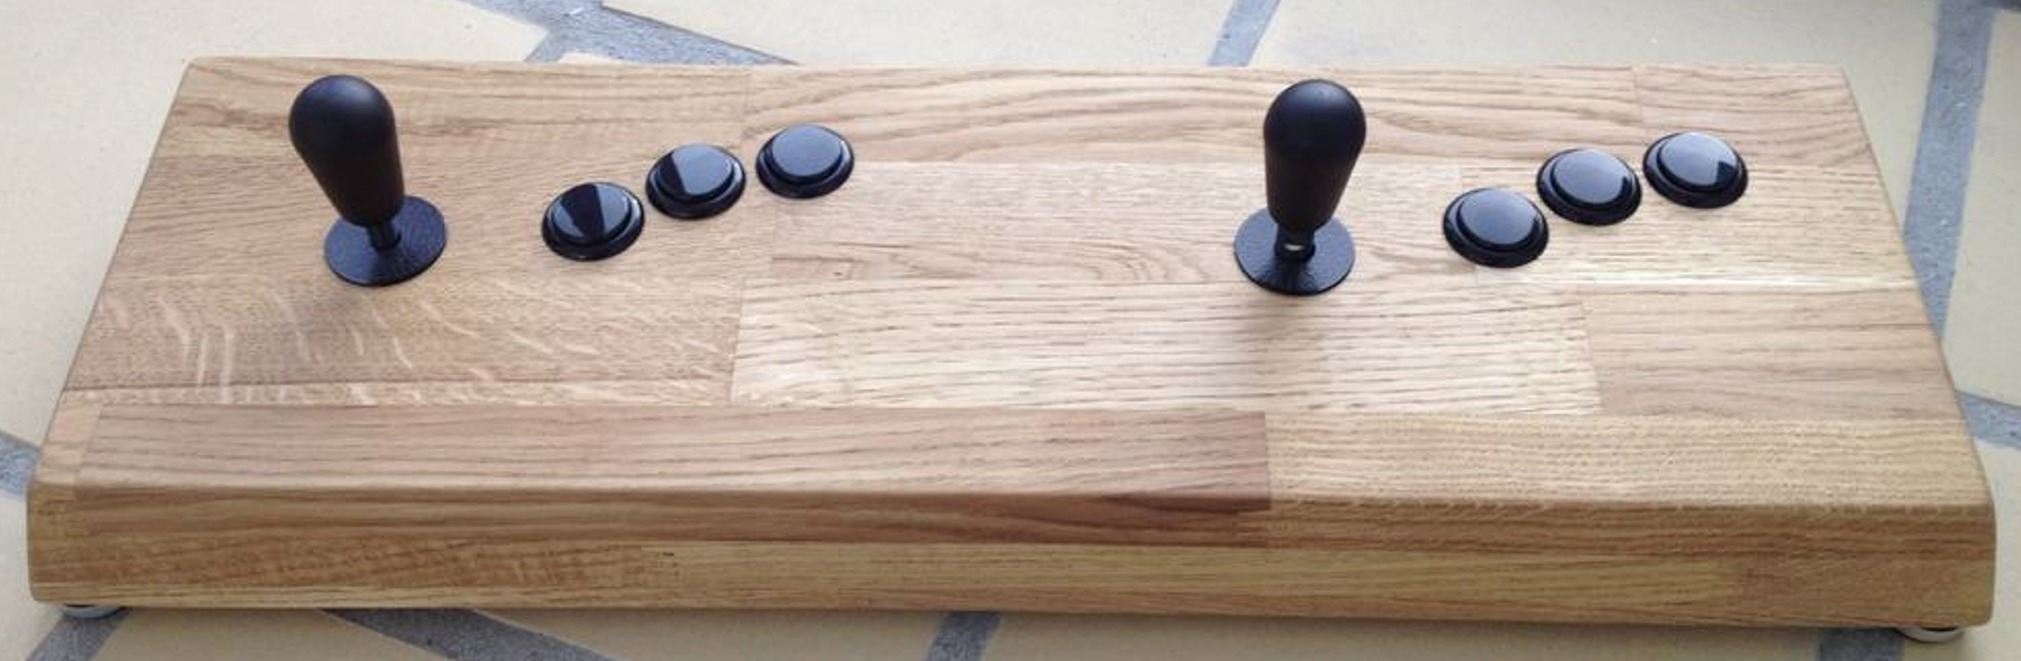 Woody fight stick II arcade fight stick made from oak wood using Seimitsu buttons and Sanwa joysticks